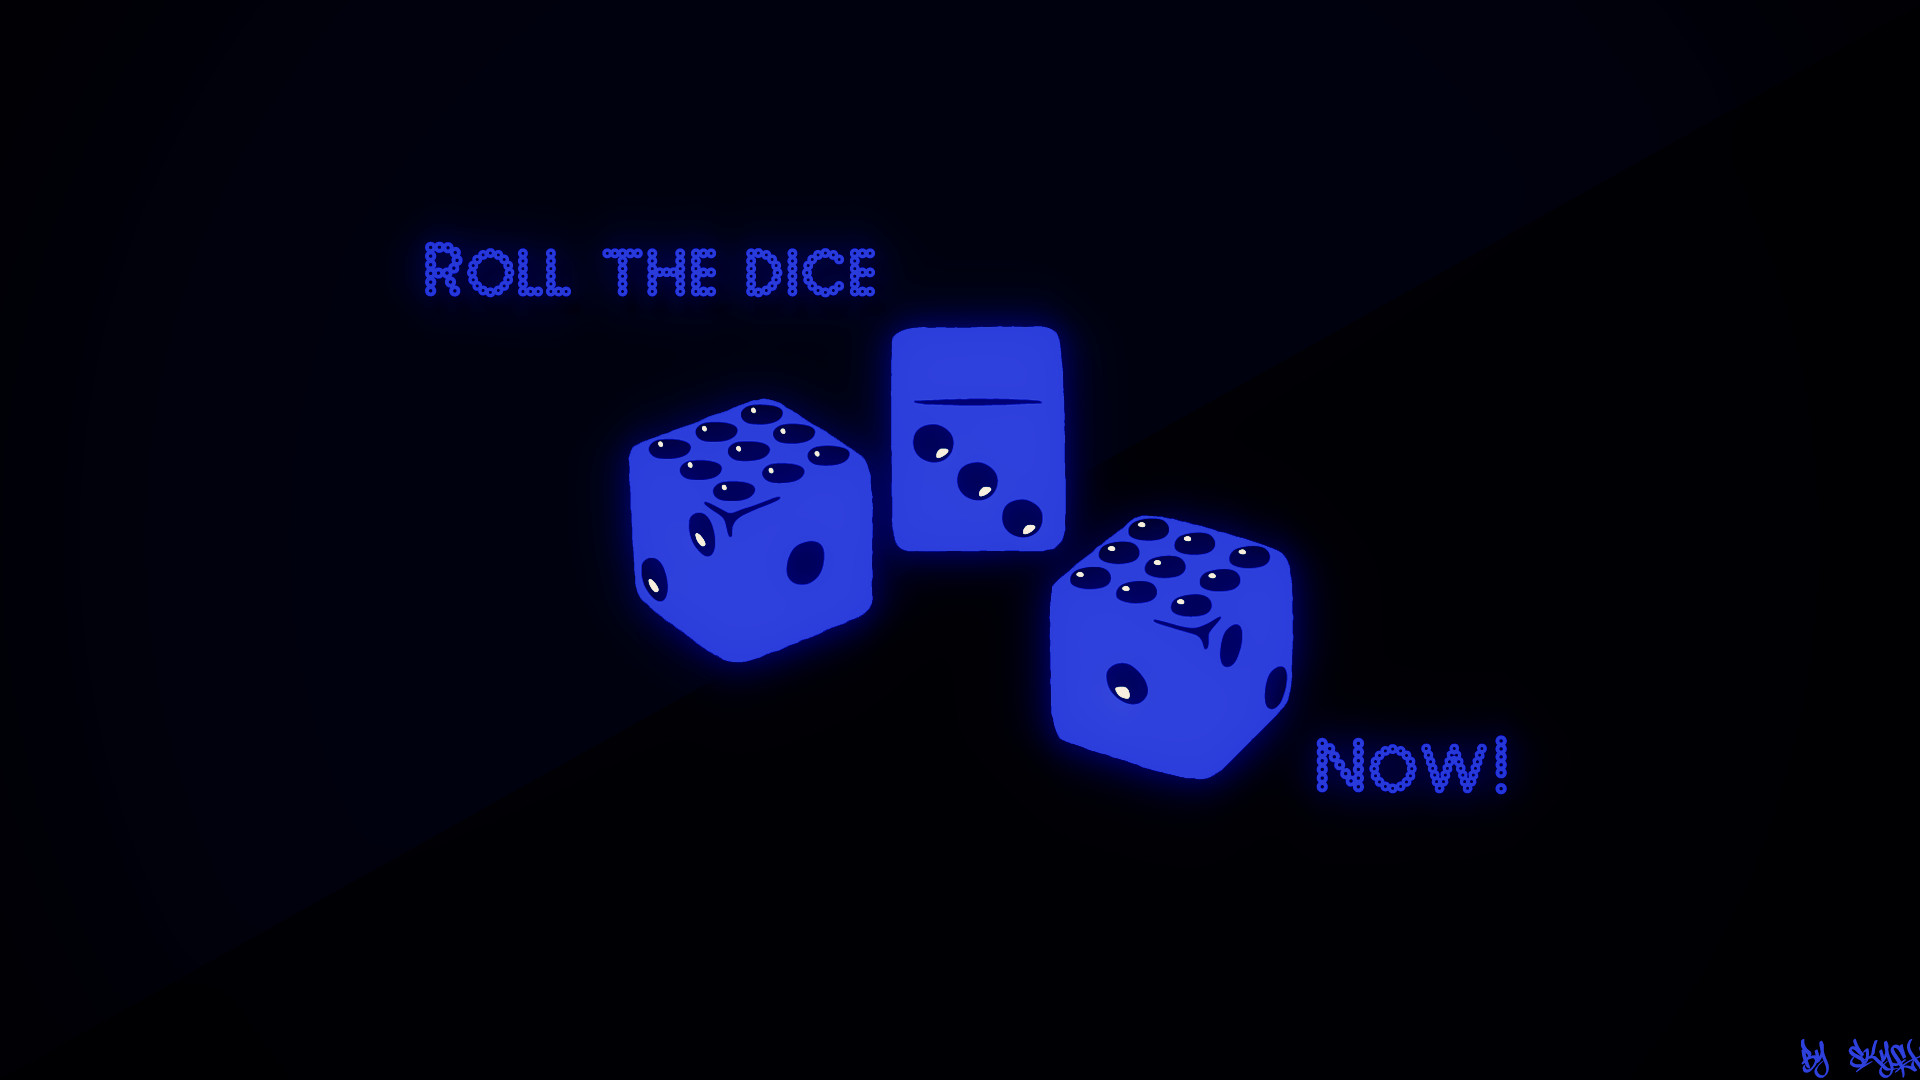 Roll the dice NOW! – WALLPAPER by TheSkyFx on DeviantArt